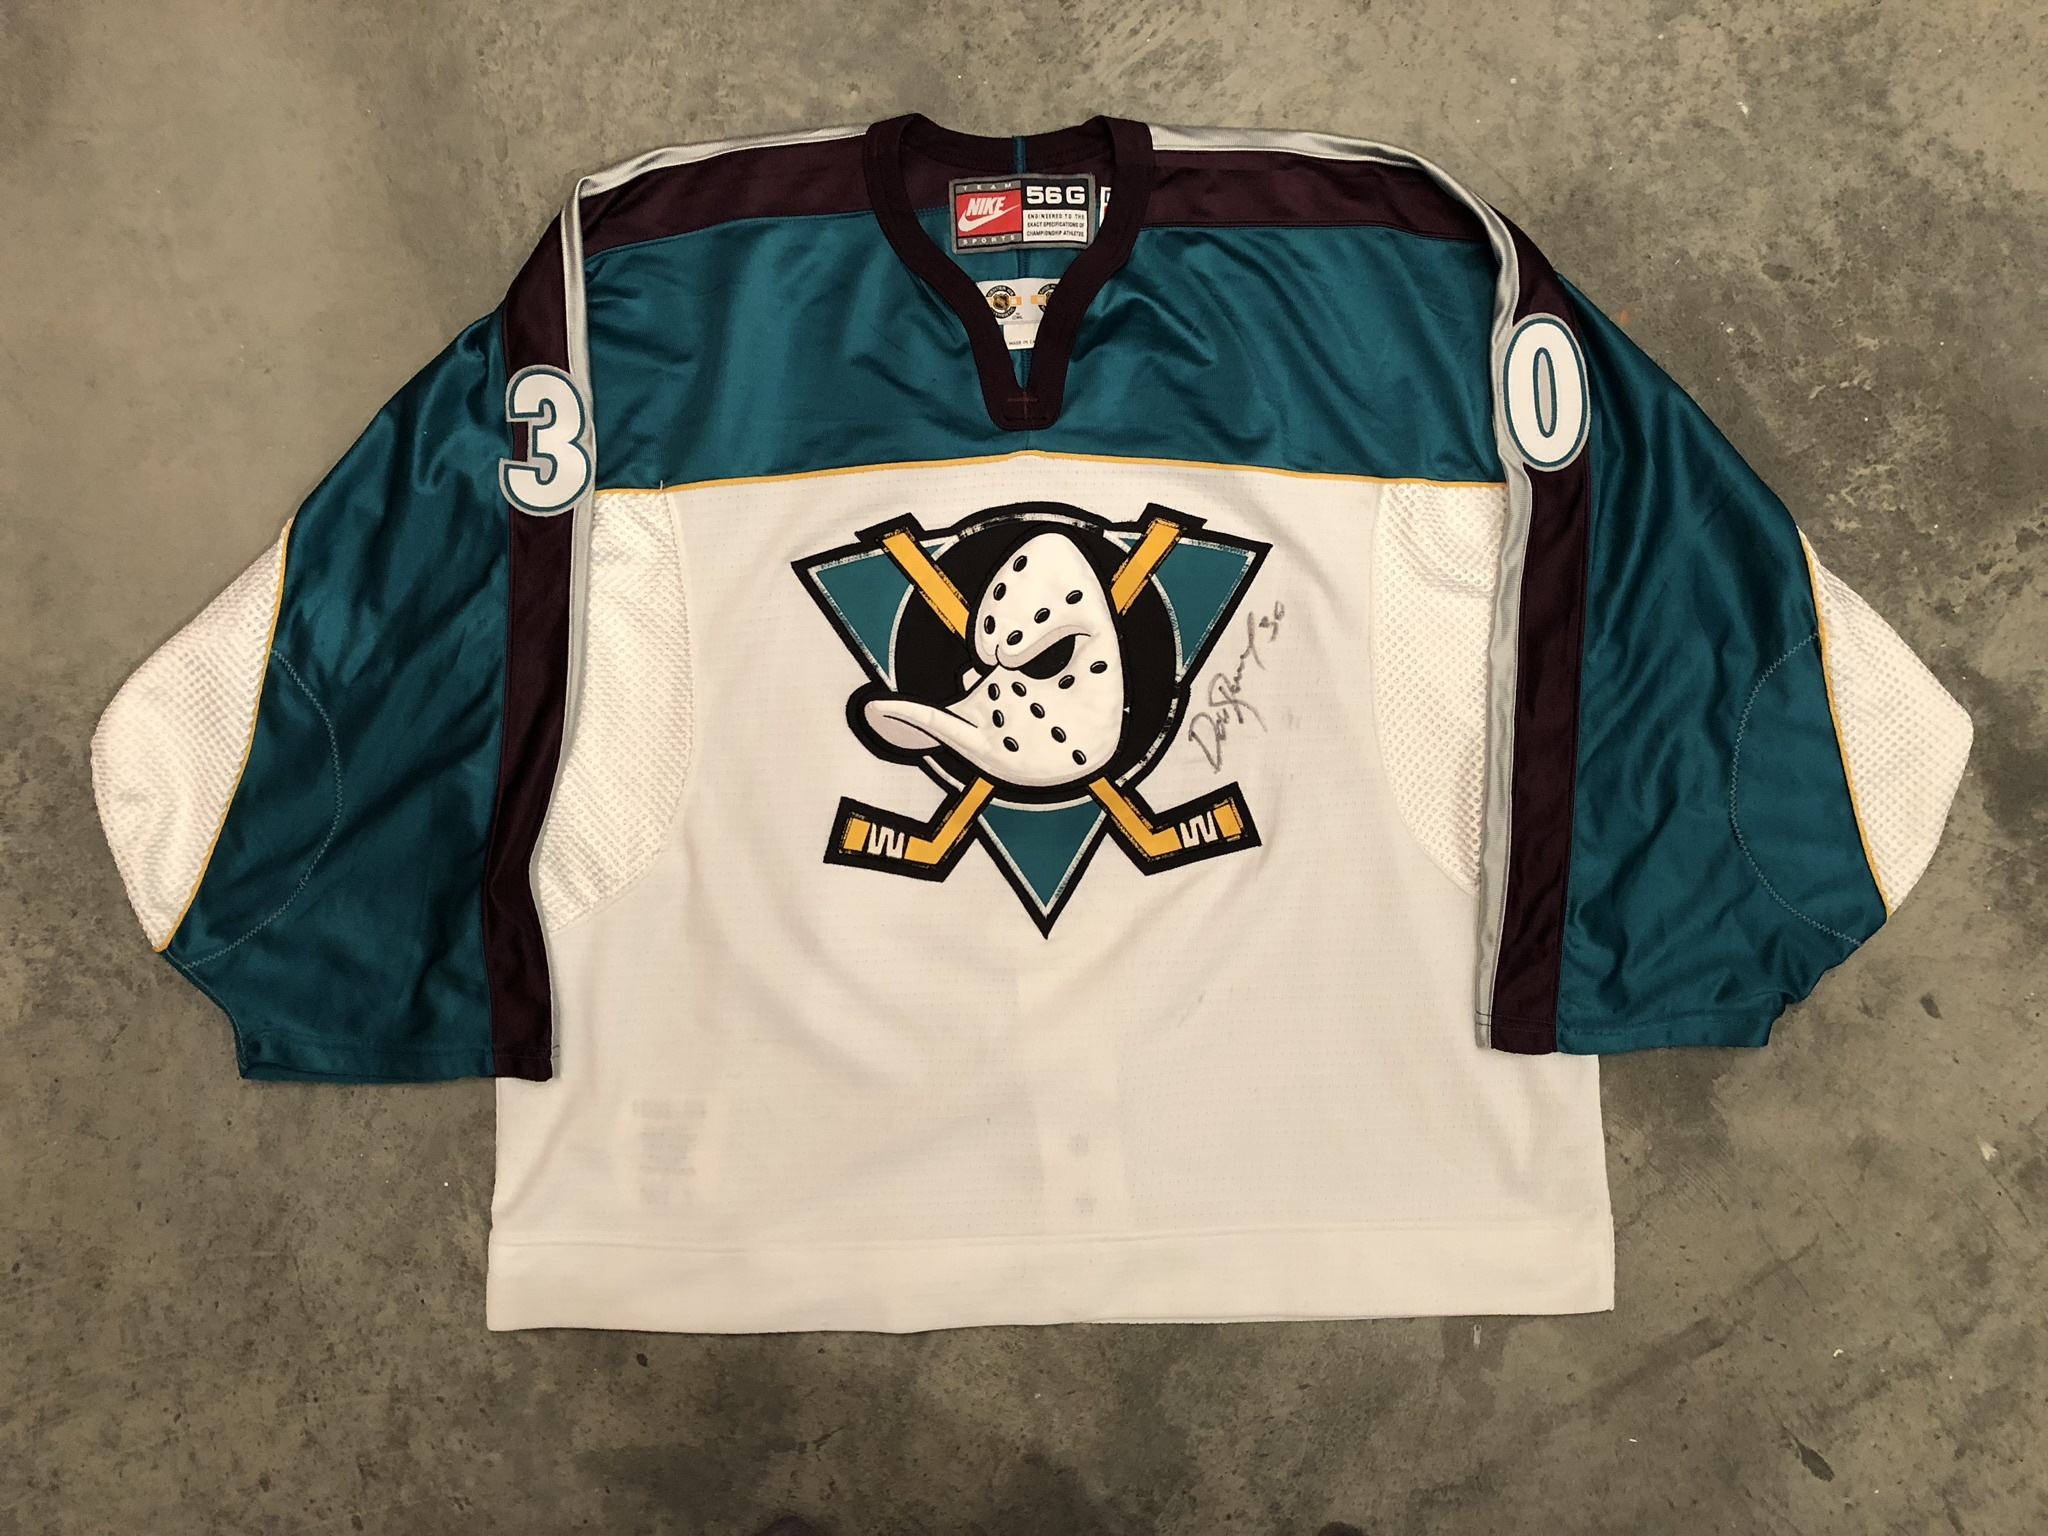 1998-99 Dominic Roussel Anaheim Mighty Ducks White Alternate Game Worn Jersey